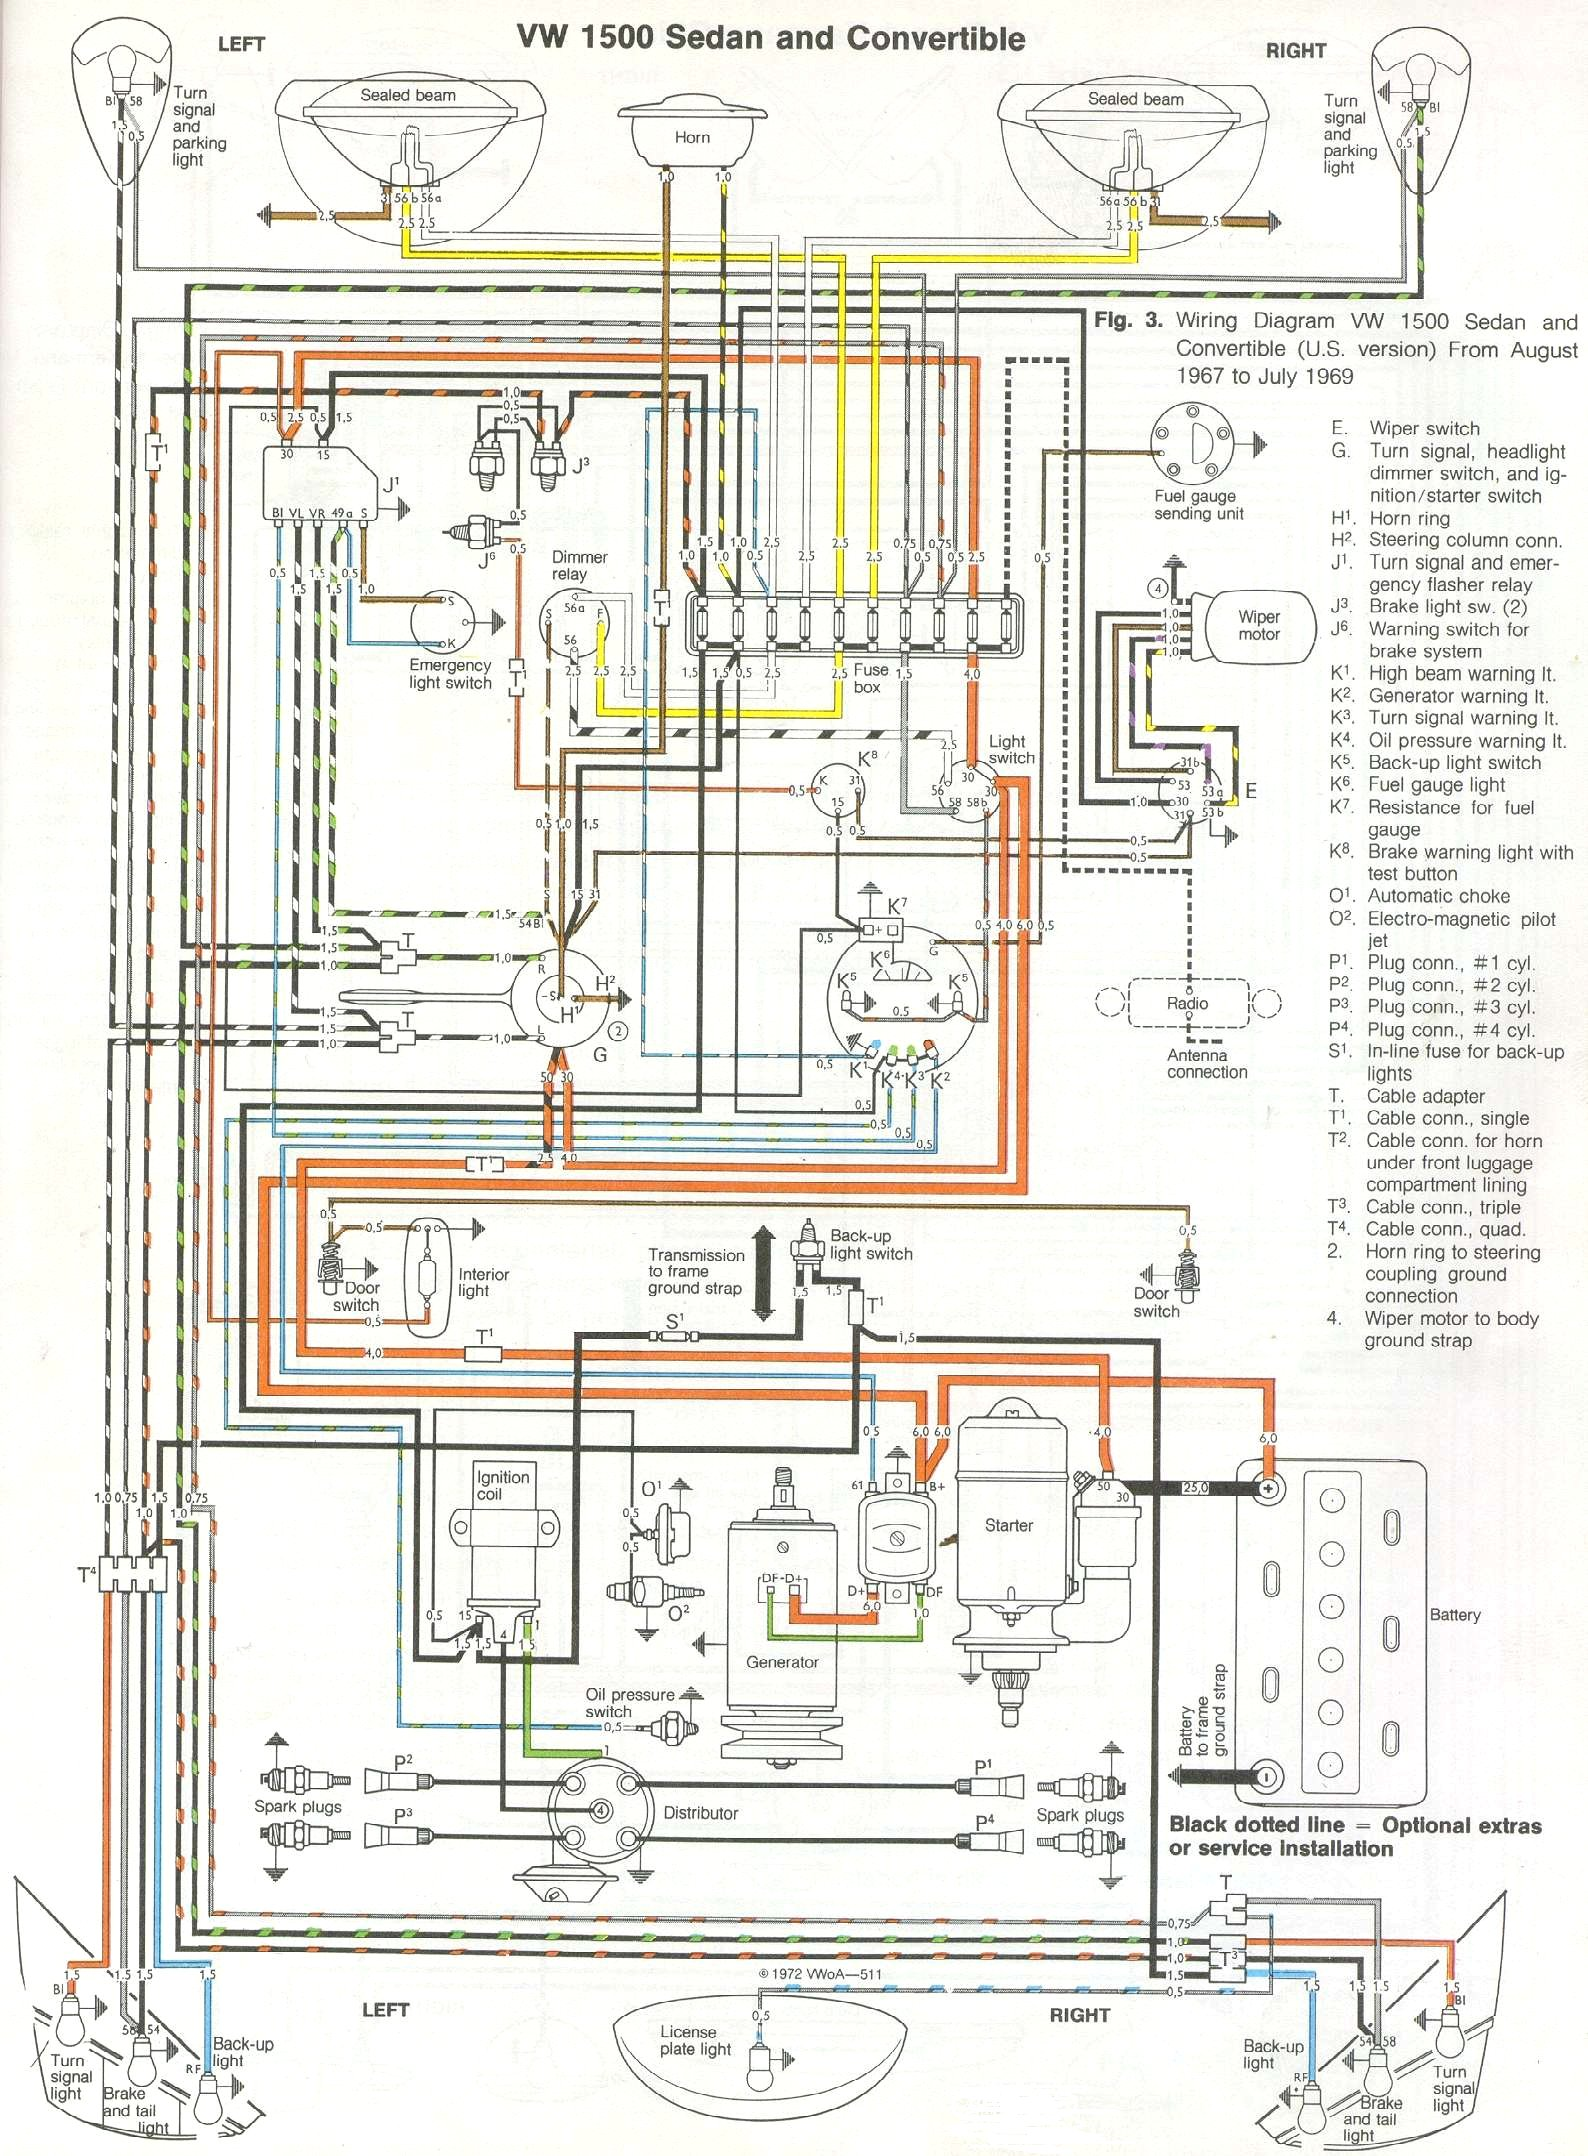 bug_6869 1969 71 beetle wiring diagram thegoldenbug com 1970 vw bug wiring diagram at panicattacktreatment.co